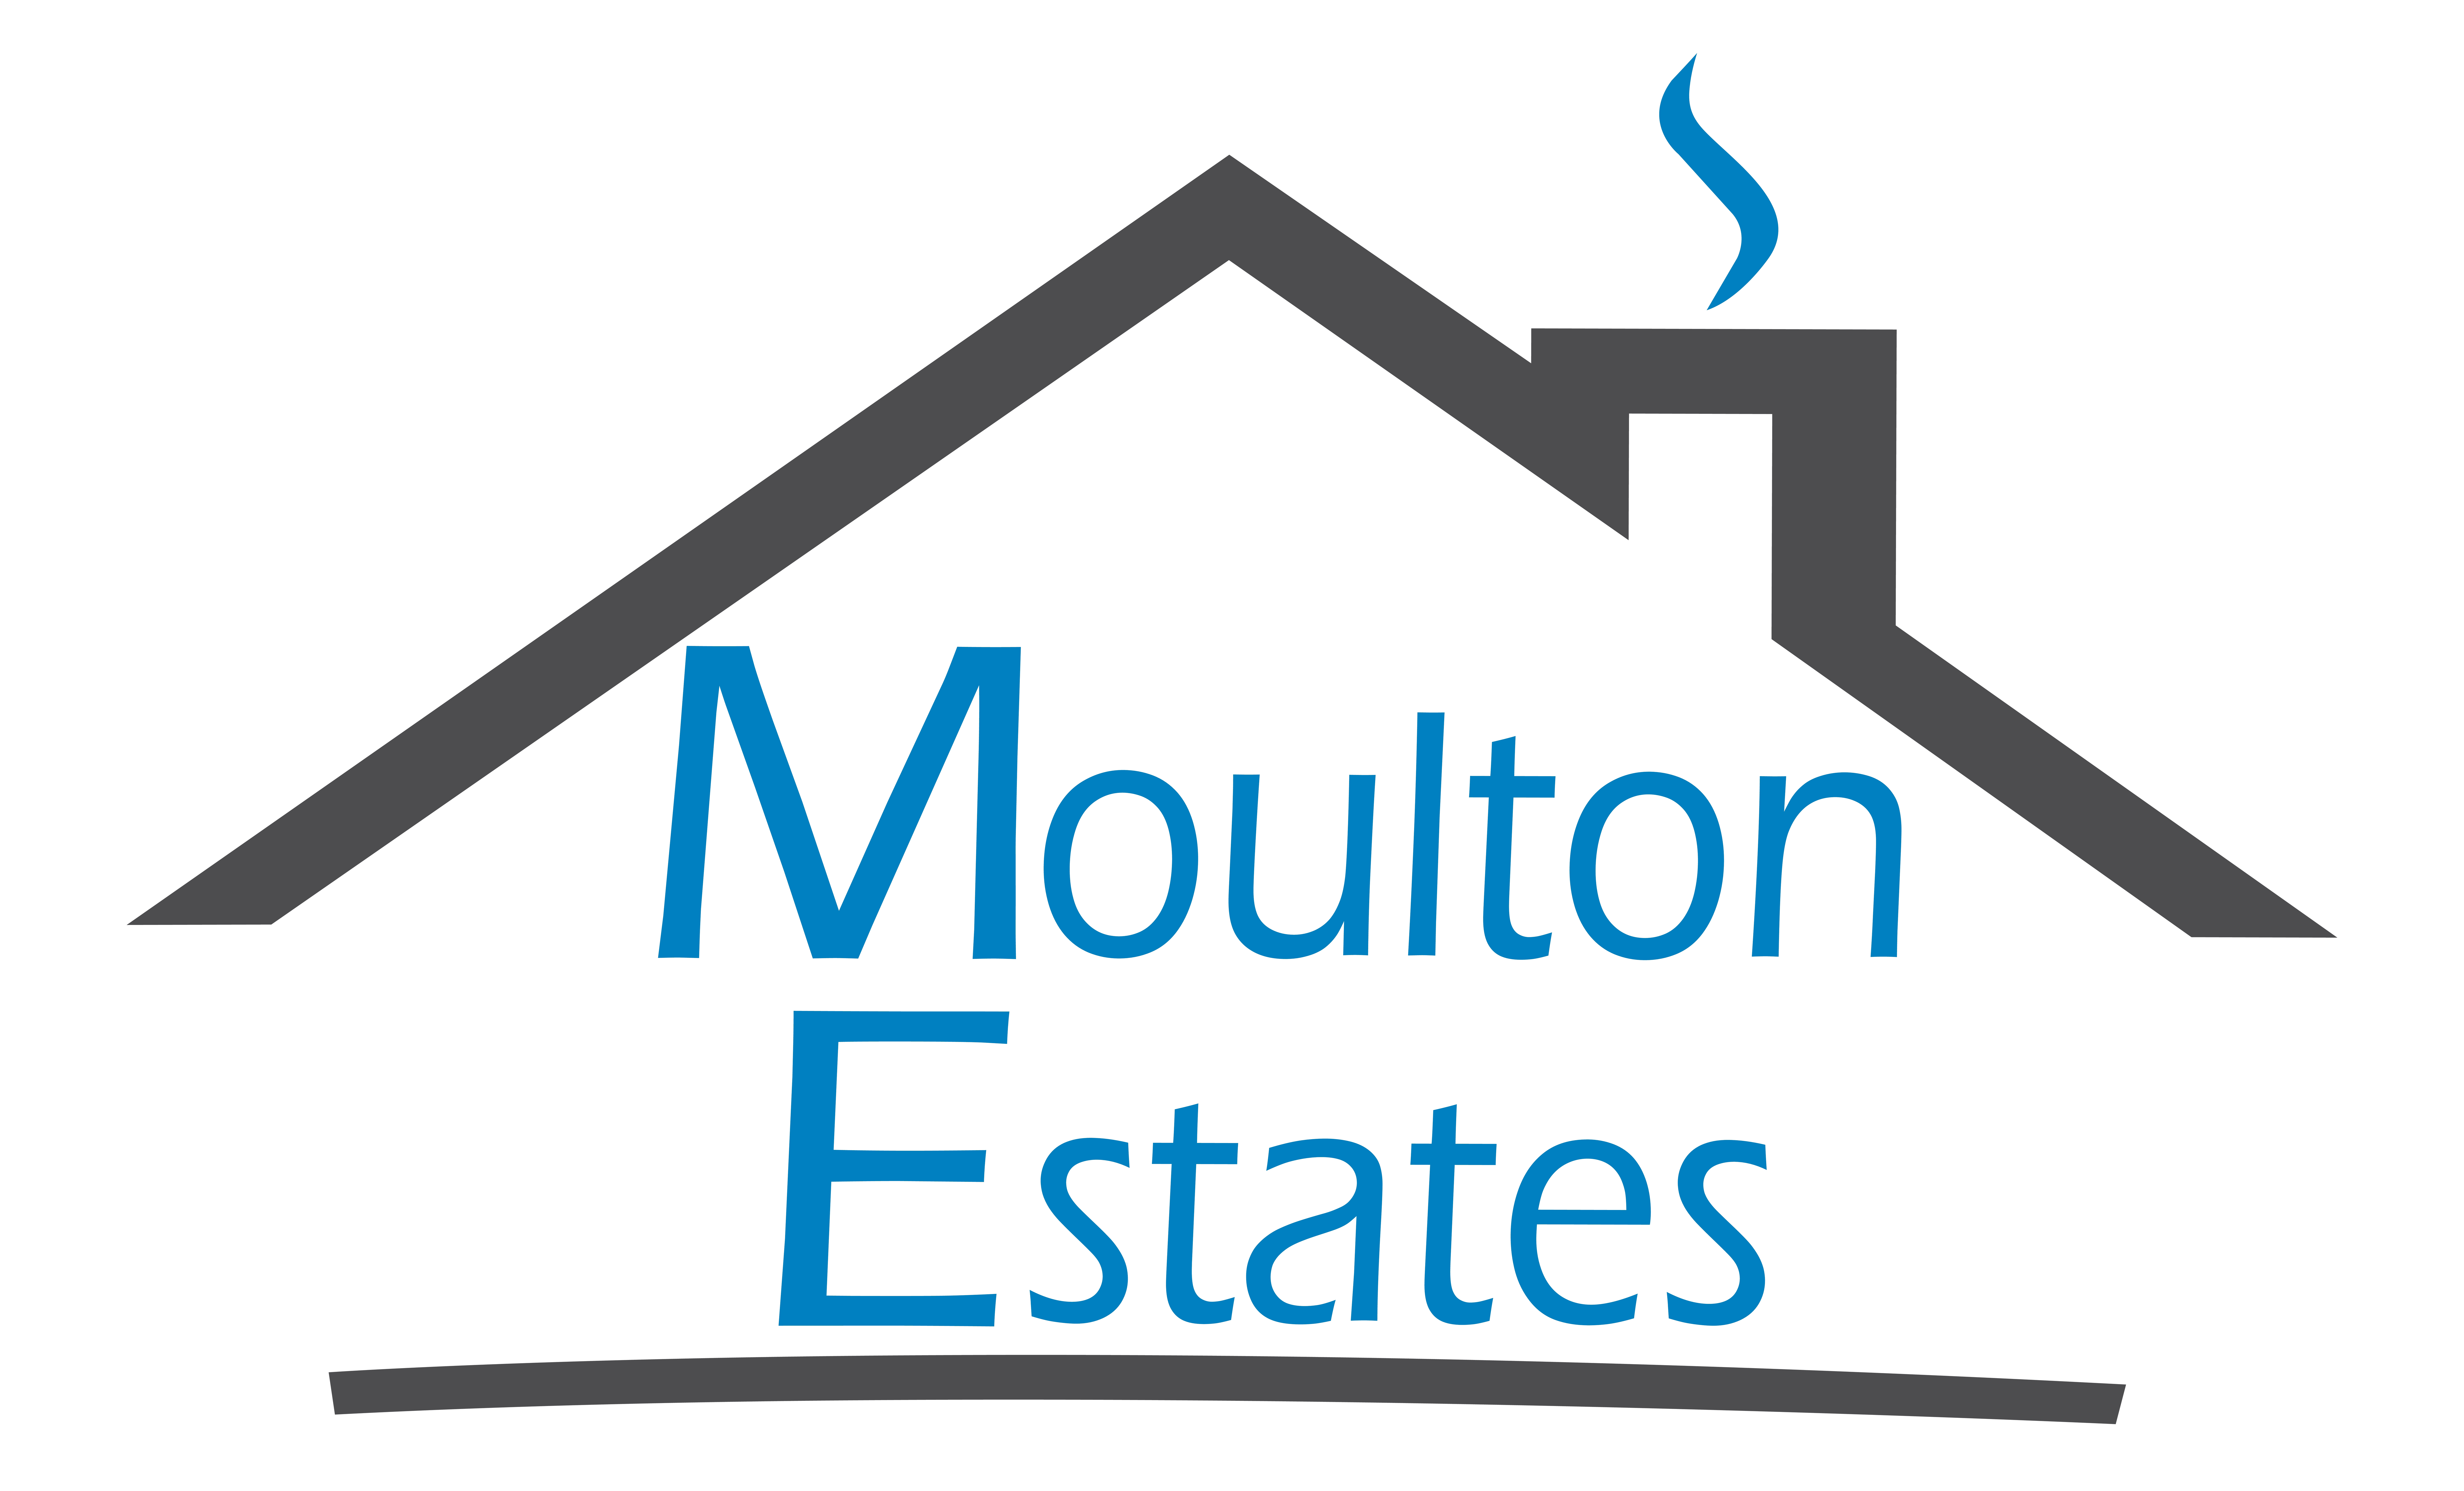 Moulton Estates estate agents in St Albans logo